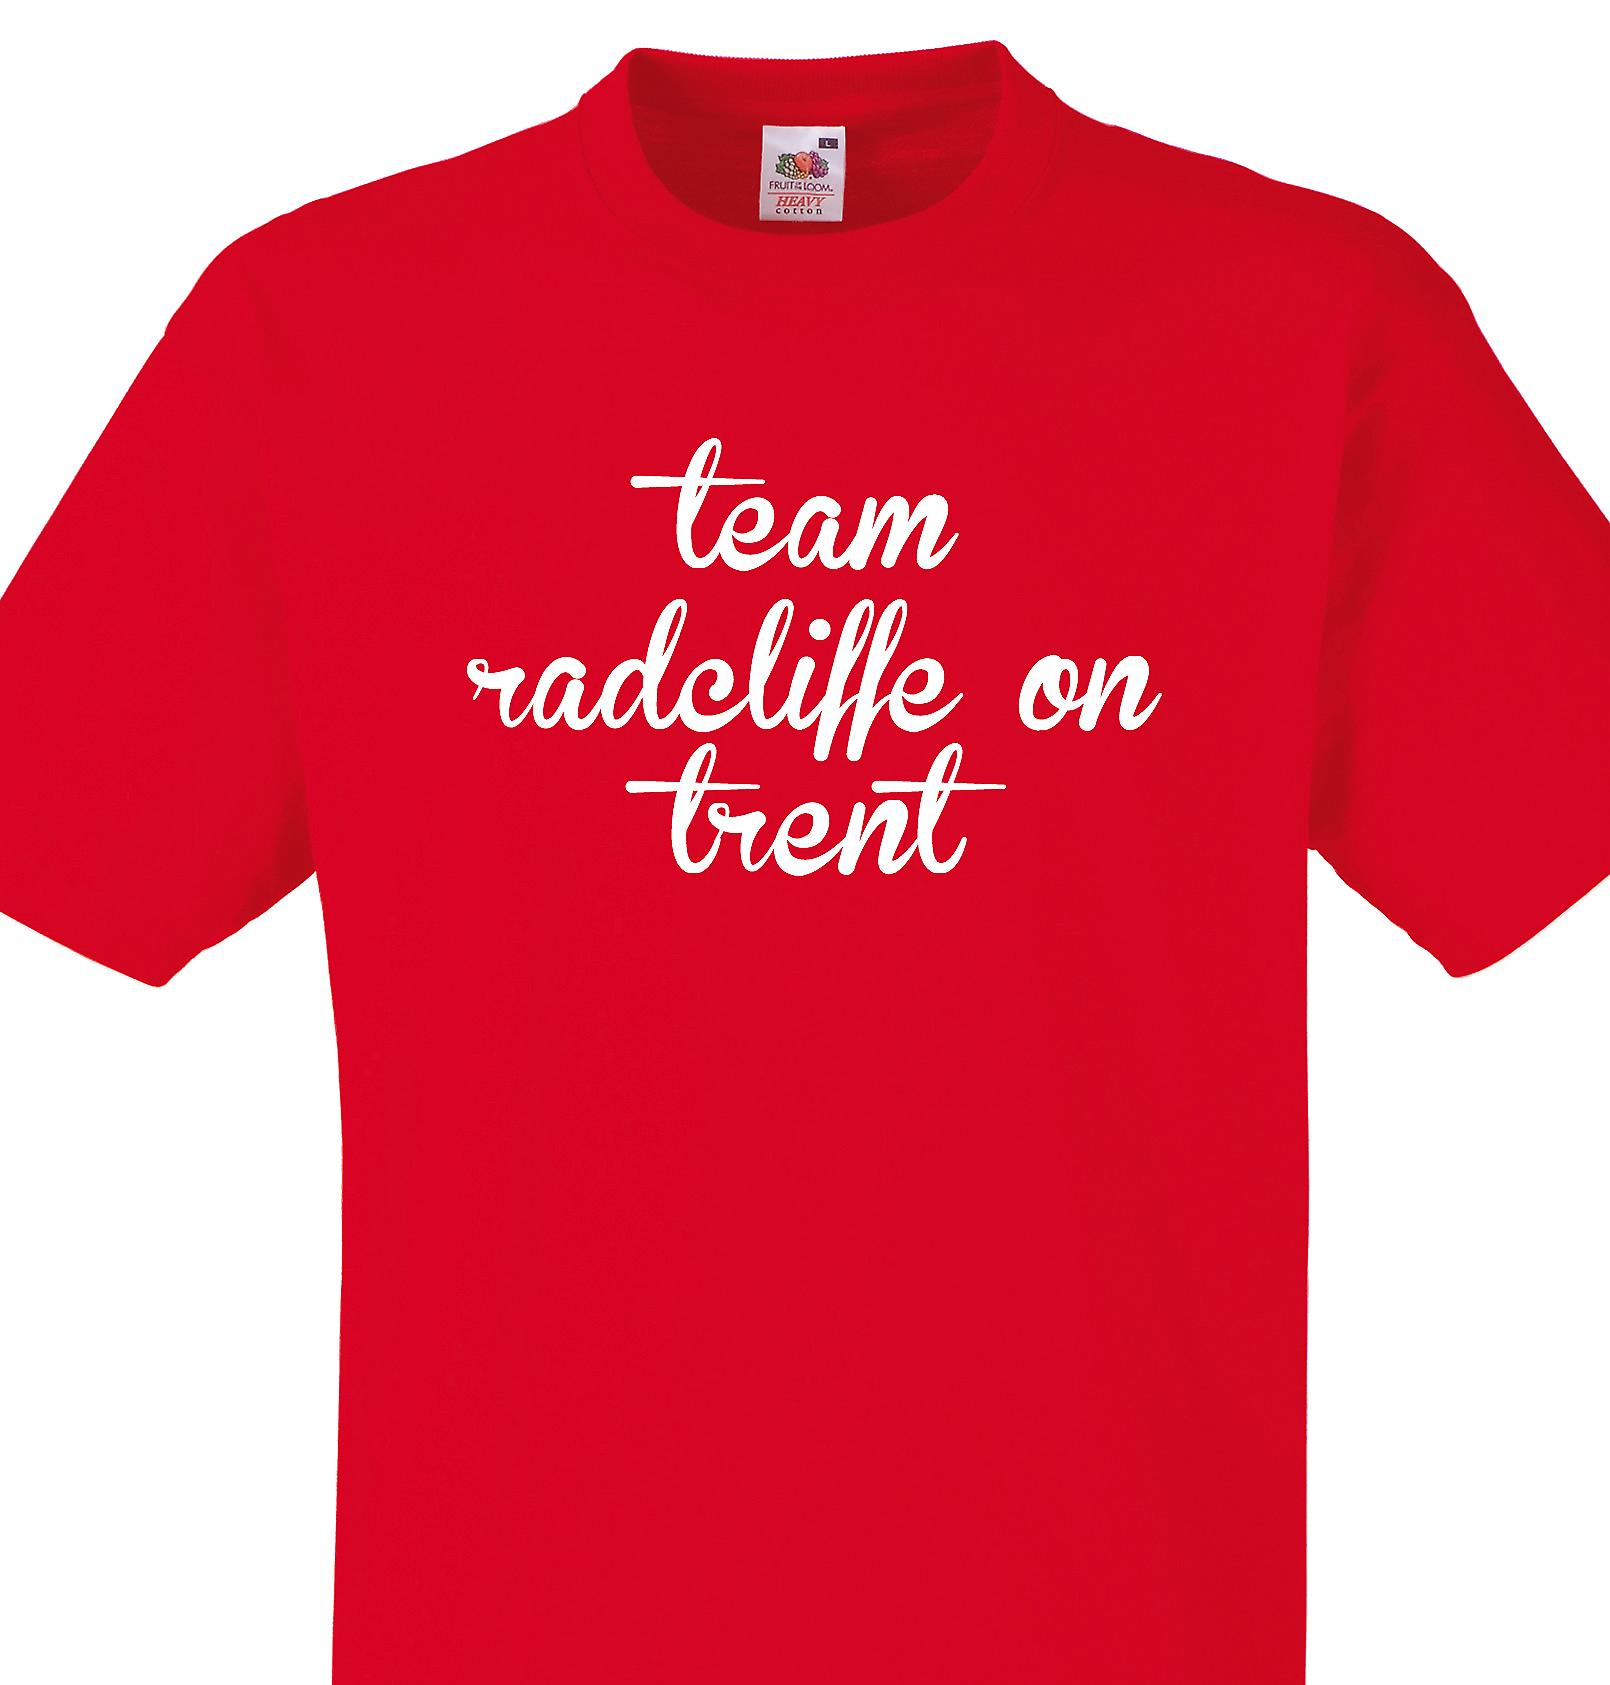 Team Radcliffe on trent Red T shirt